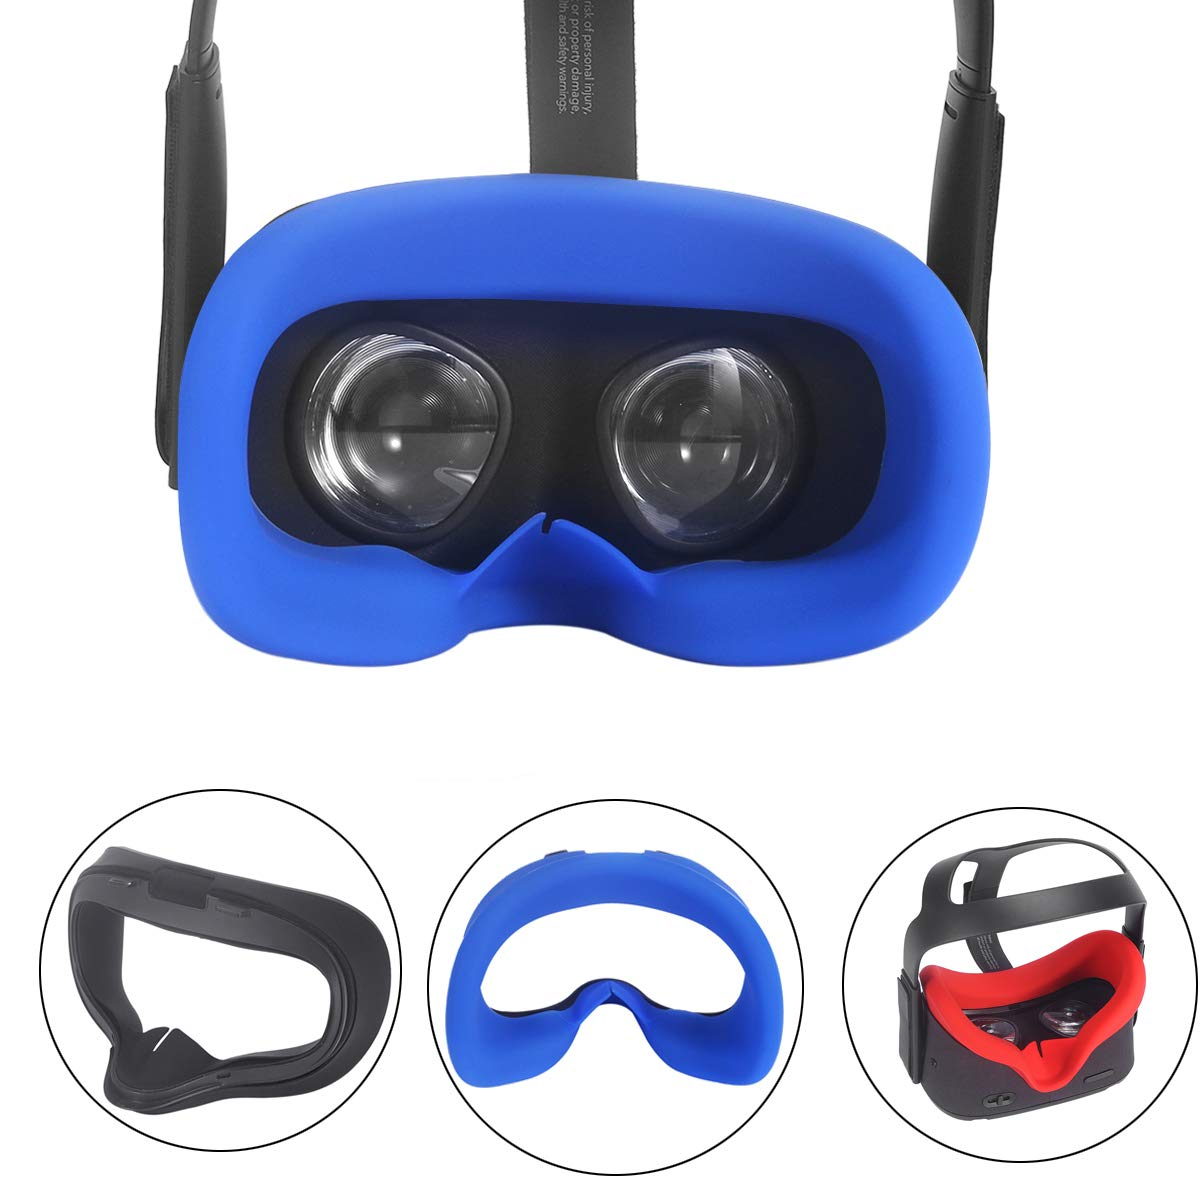 Mask Cushion VR Silicone Mask Pad /& Sweatproof Face Cover Compatible for Oculus Quest Face Cushion Blue